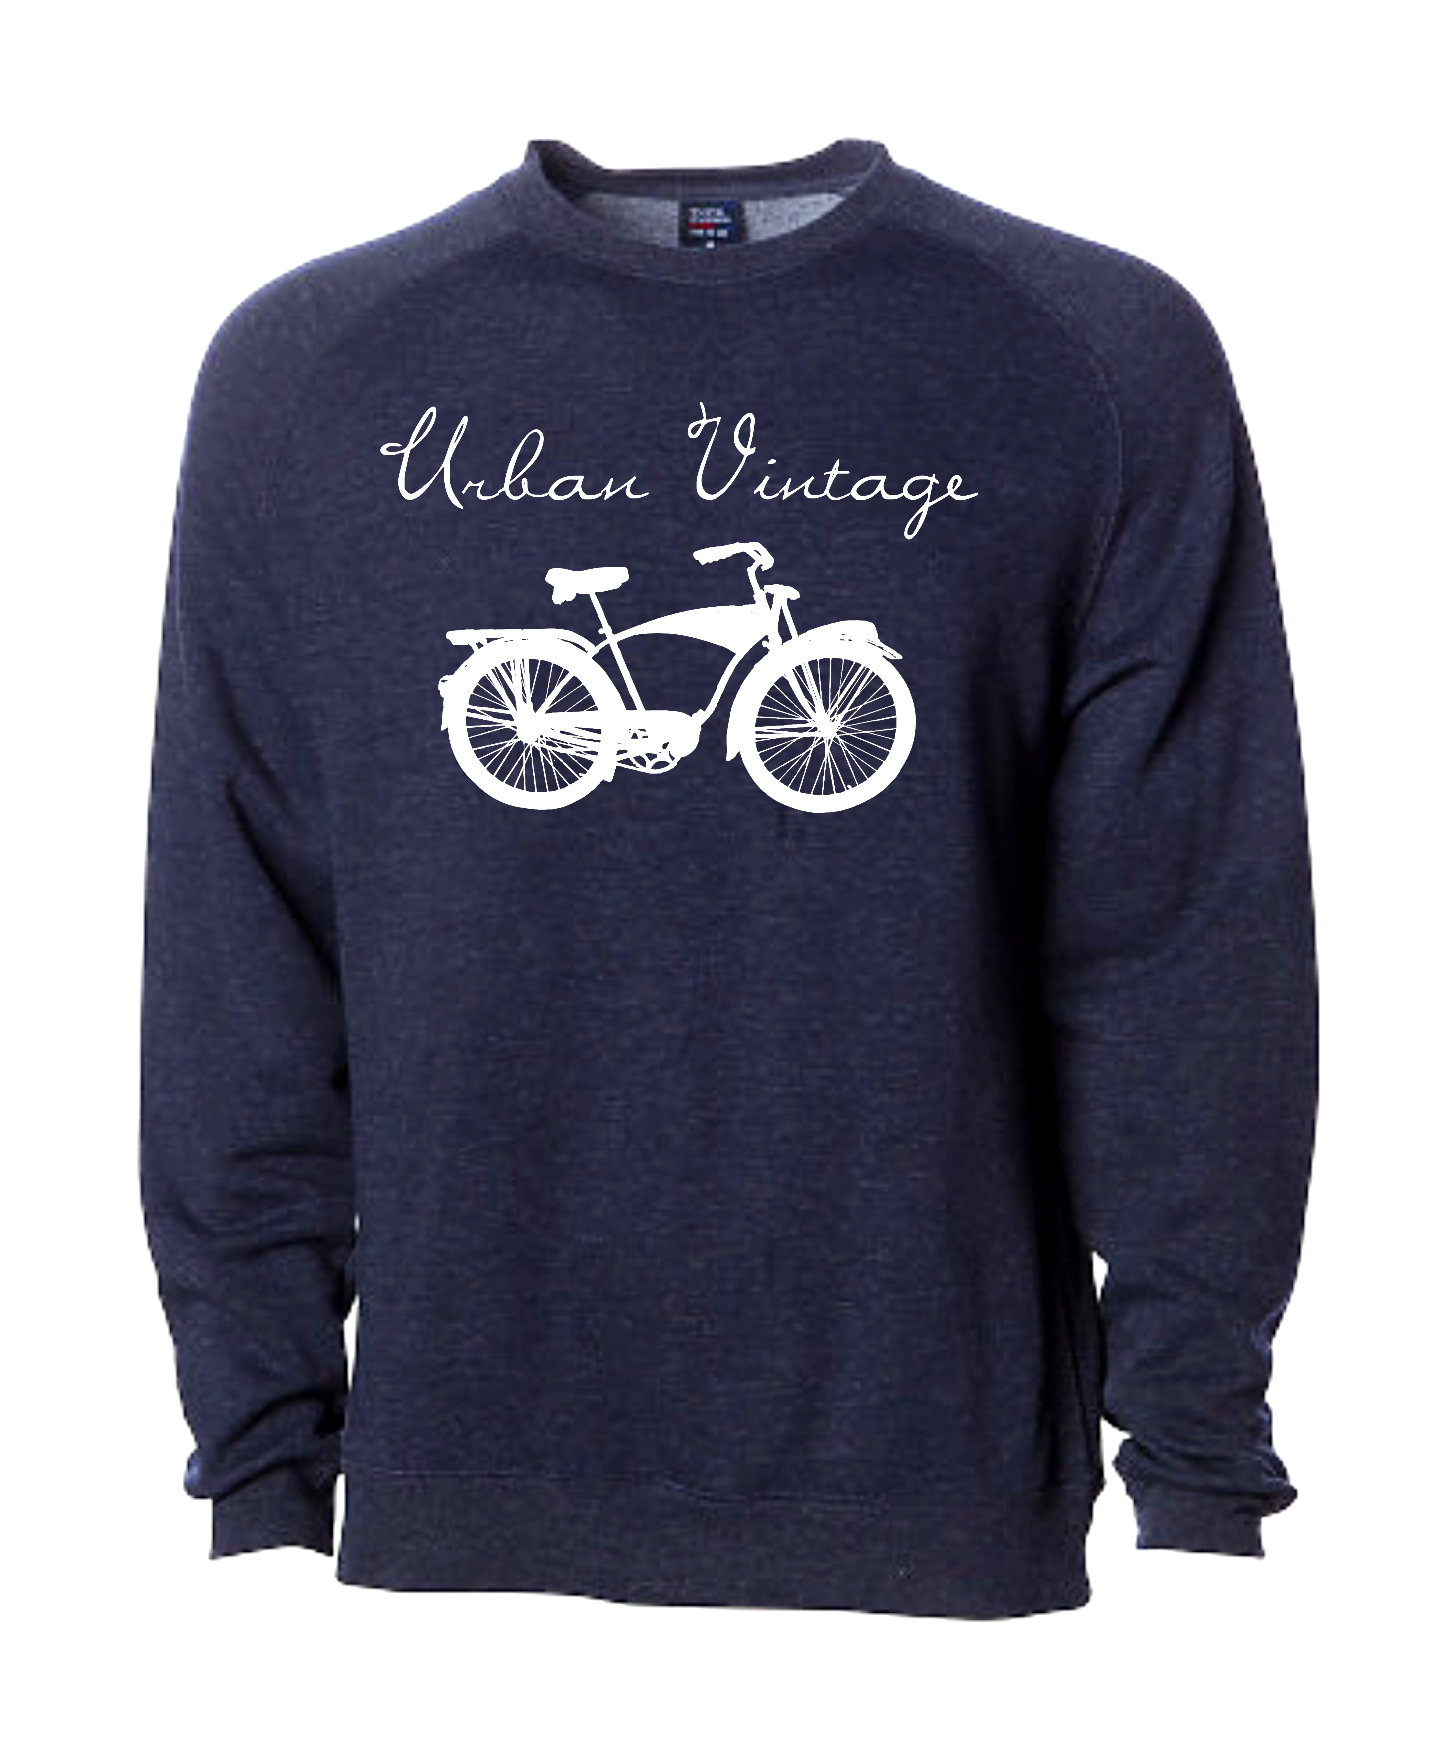 UV Crew Neck Sweatshirt-Navy/White